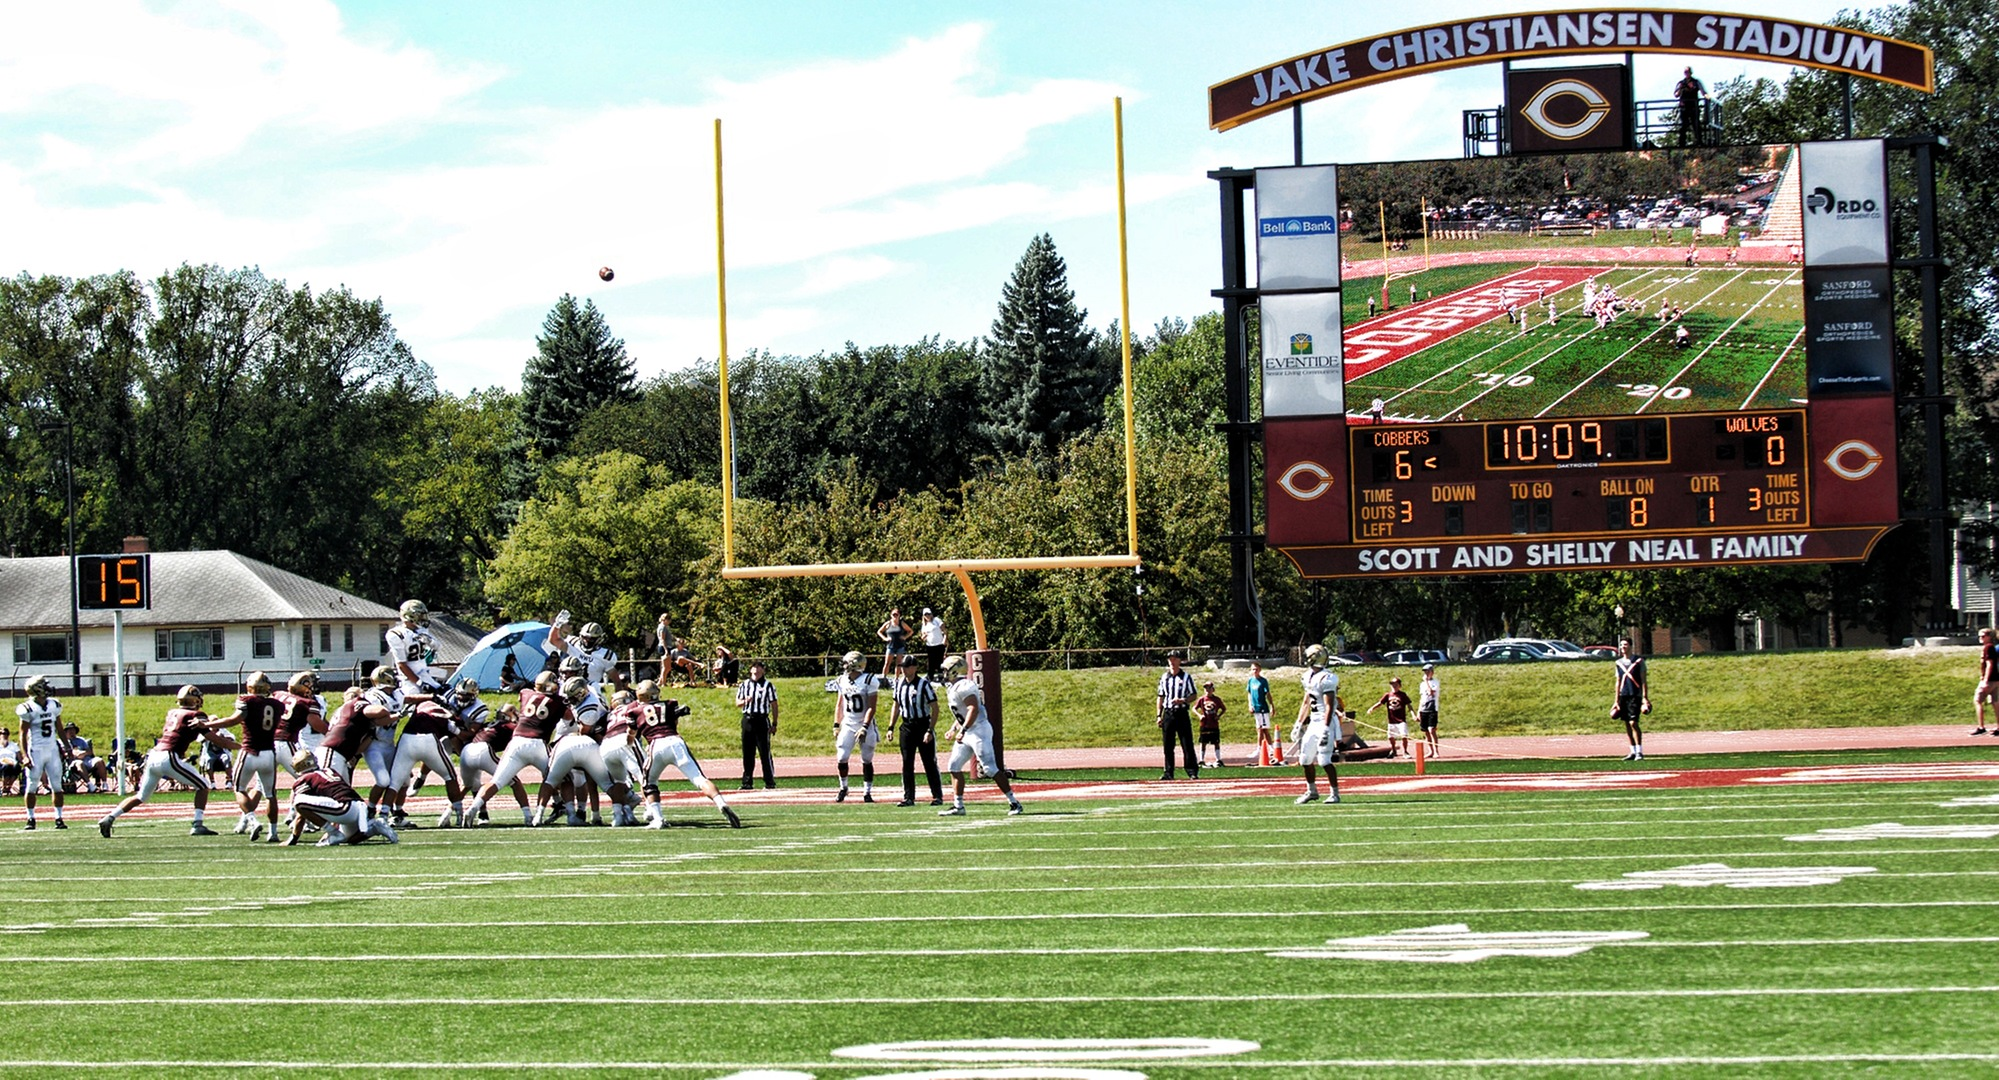 Senior kicker Tony Marzolf connects on an extra point in the Cobbers' season-opening win over Neb. Wesleyan which was the debut of the brand new $1 million scoreboard.